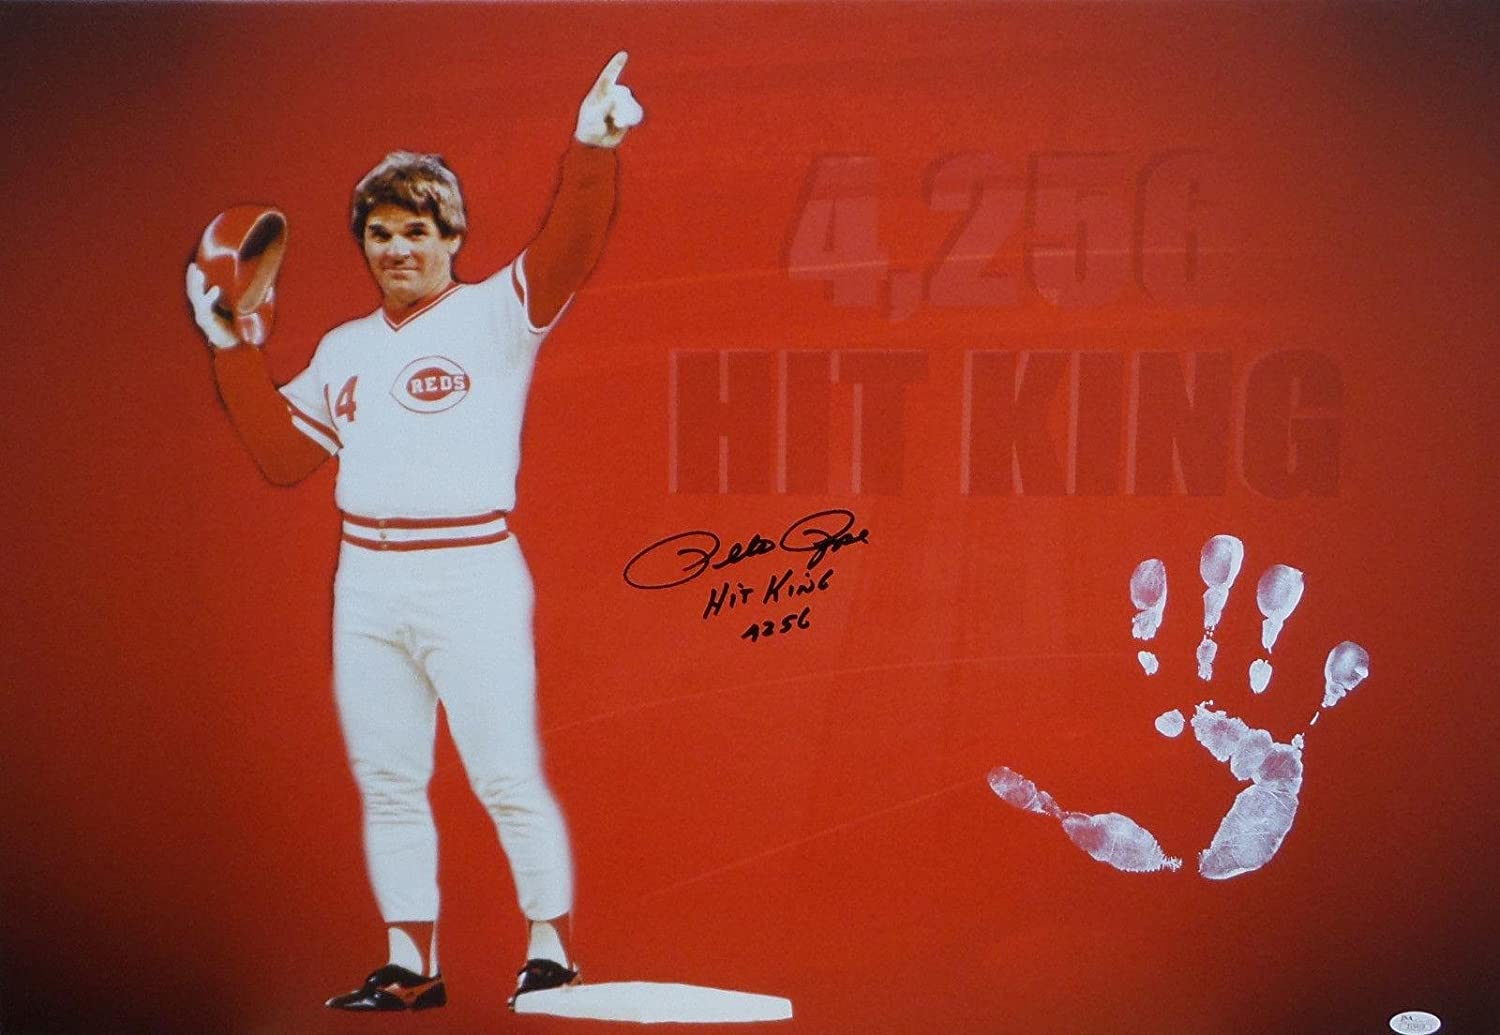 Pete Rose Hand Print Unstretched Canvas Record Breaker Signed Authenticad - JSA Certified - Autographed MLB Art